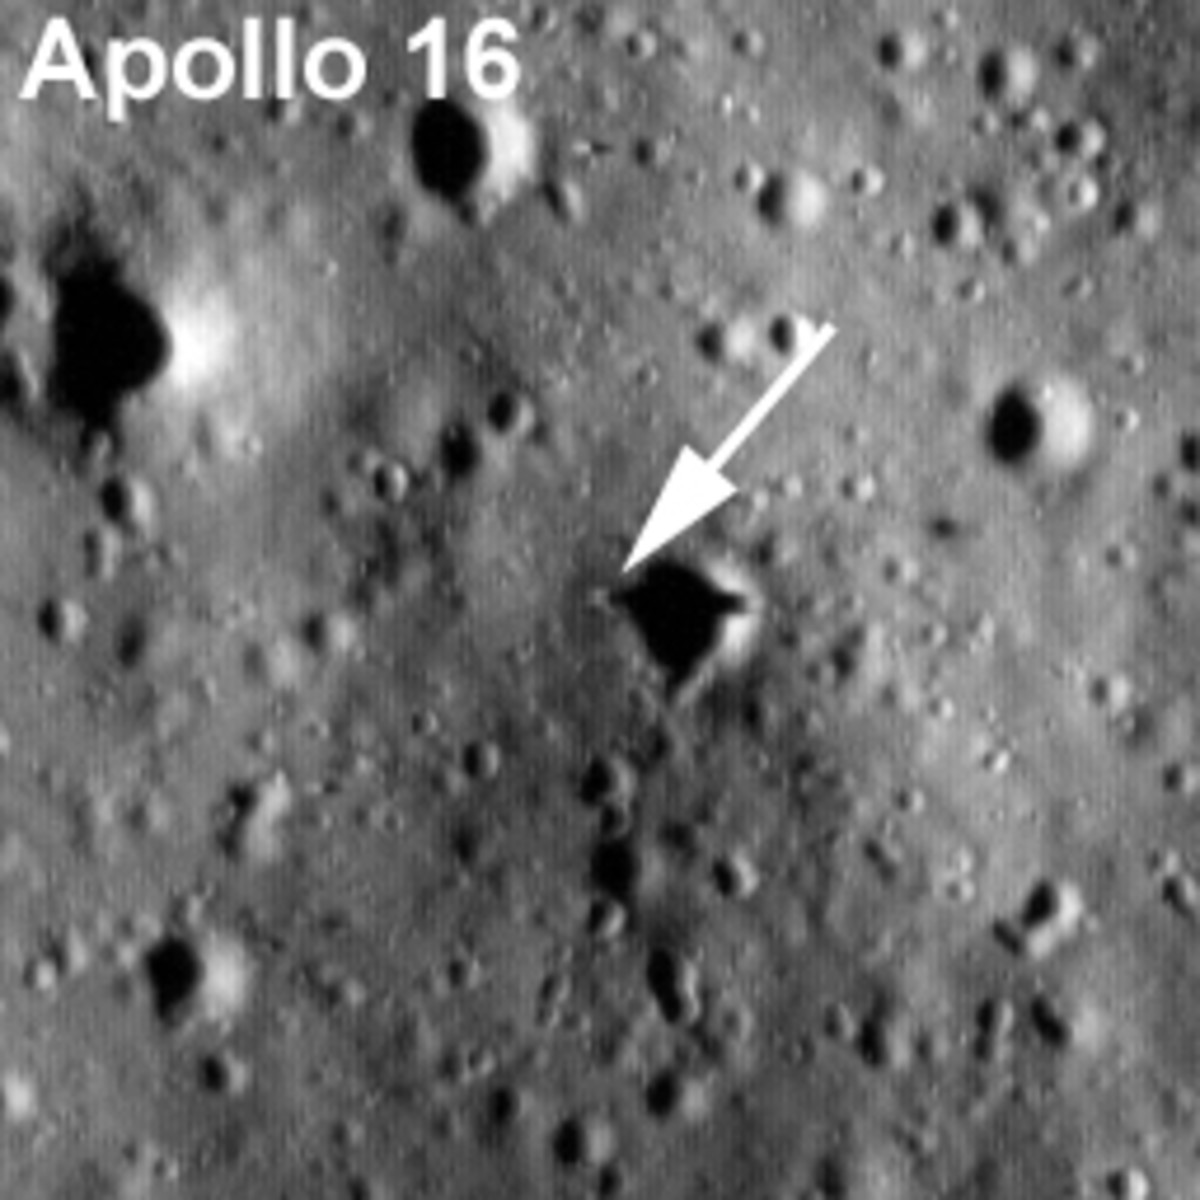 Here's how you can spot it. The sun was so low that the descent module's shadow extends right across the crater (I think?)